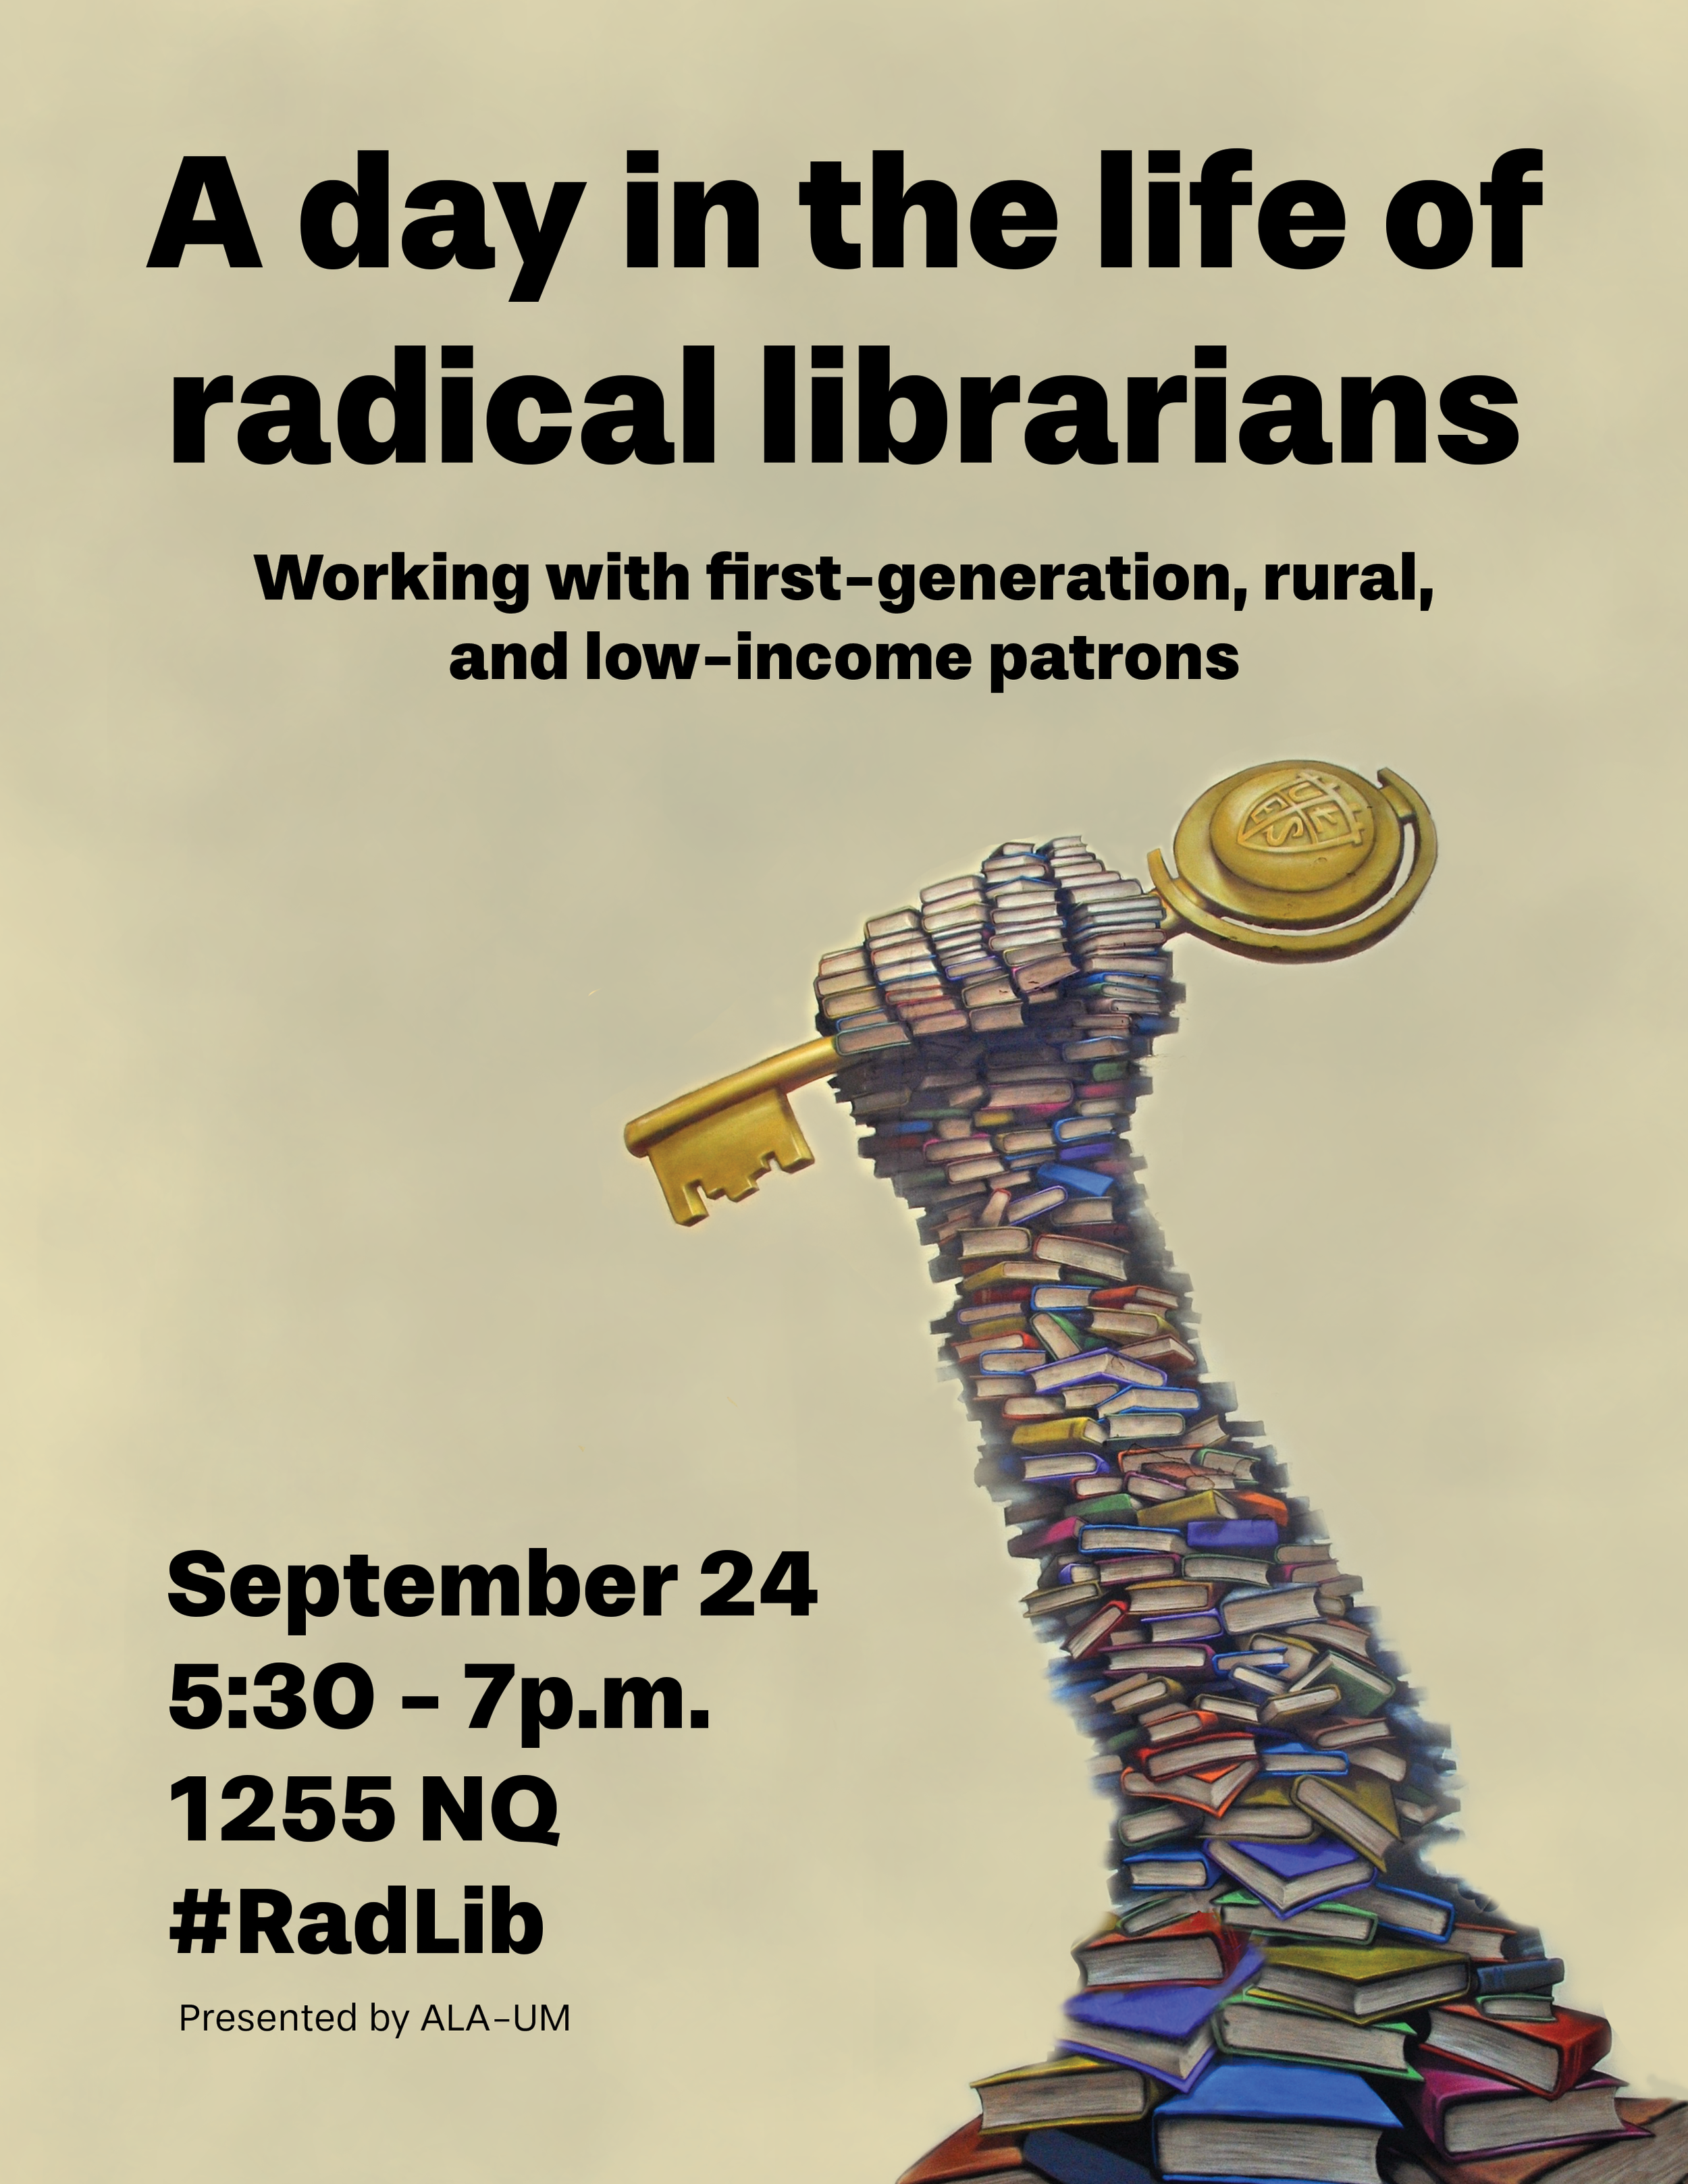 Poster for the first RadLib with graffiti artwork of a hand made of books grabbing a key